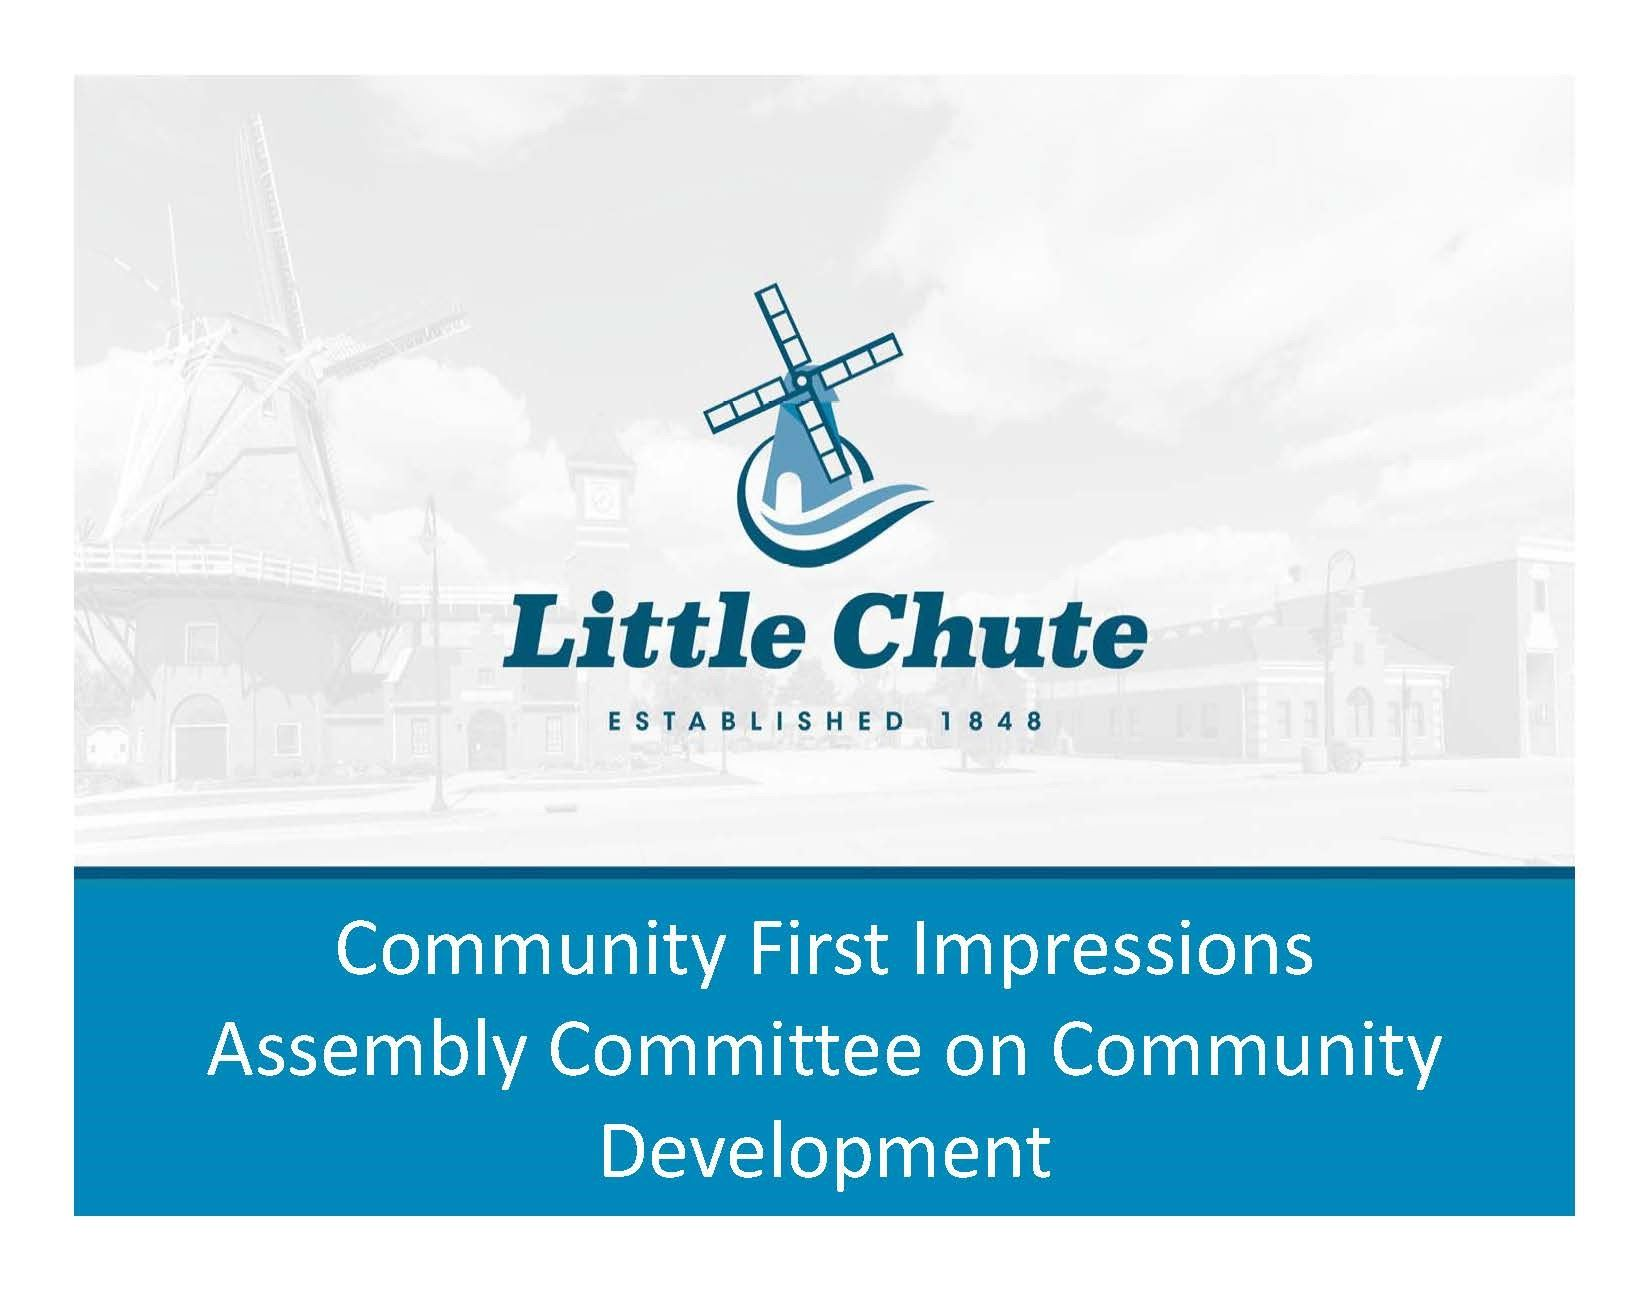 Little Chute Community First Impressions